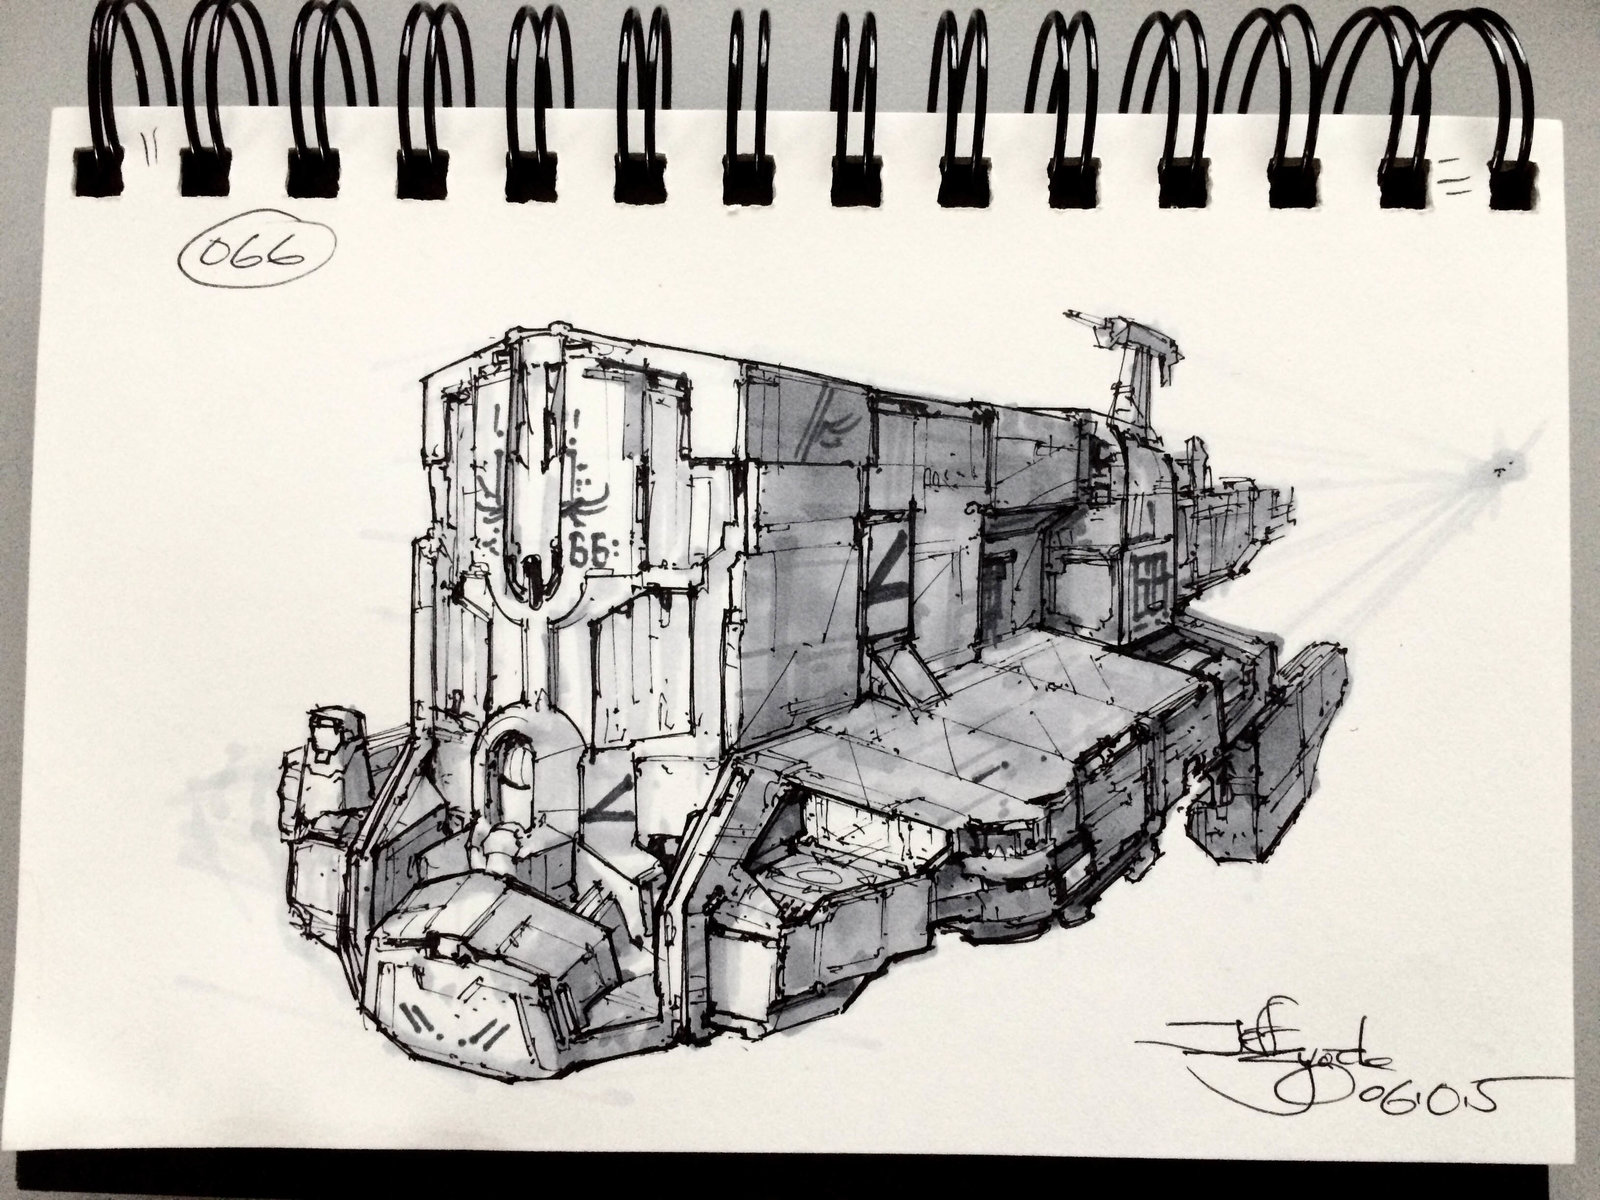 SpaceshipADay 066